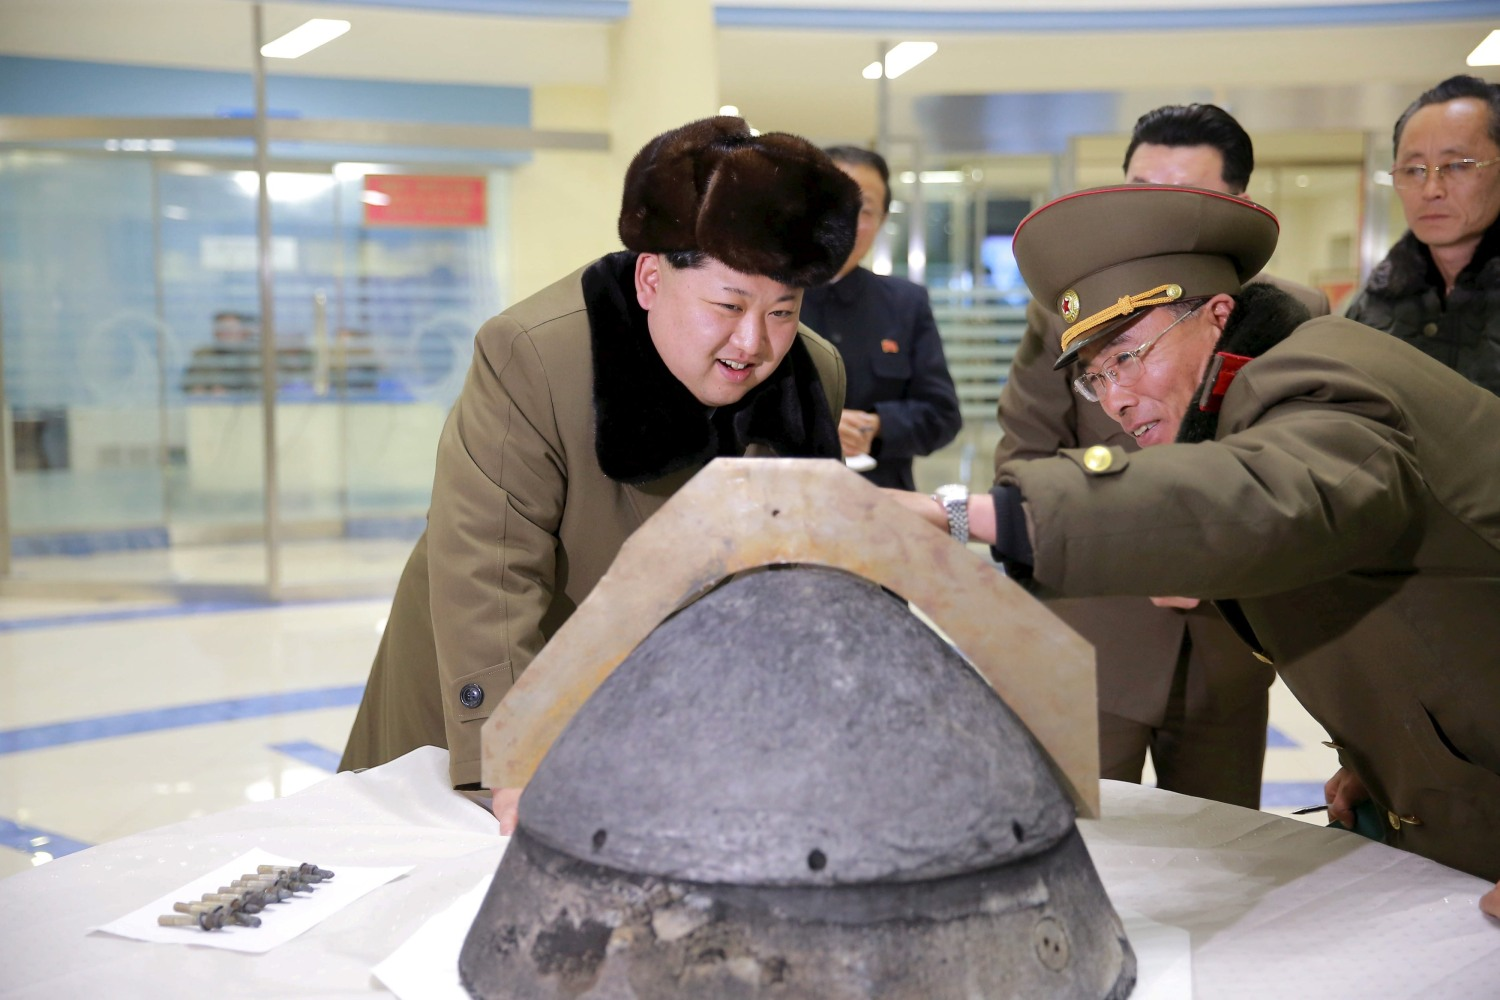 North Korea's Next Nuclear Test Could Come At 'Any Time'